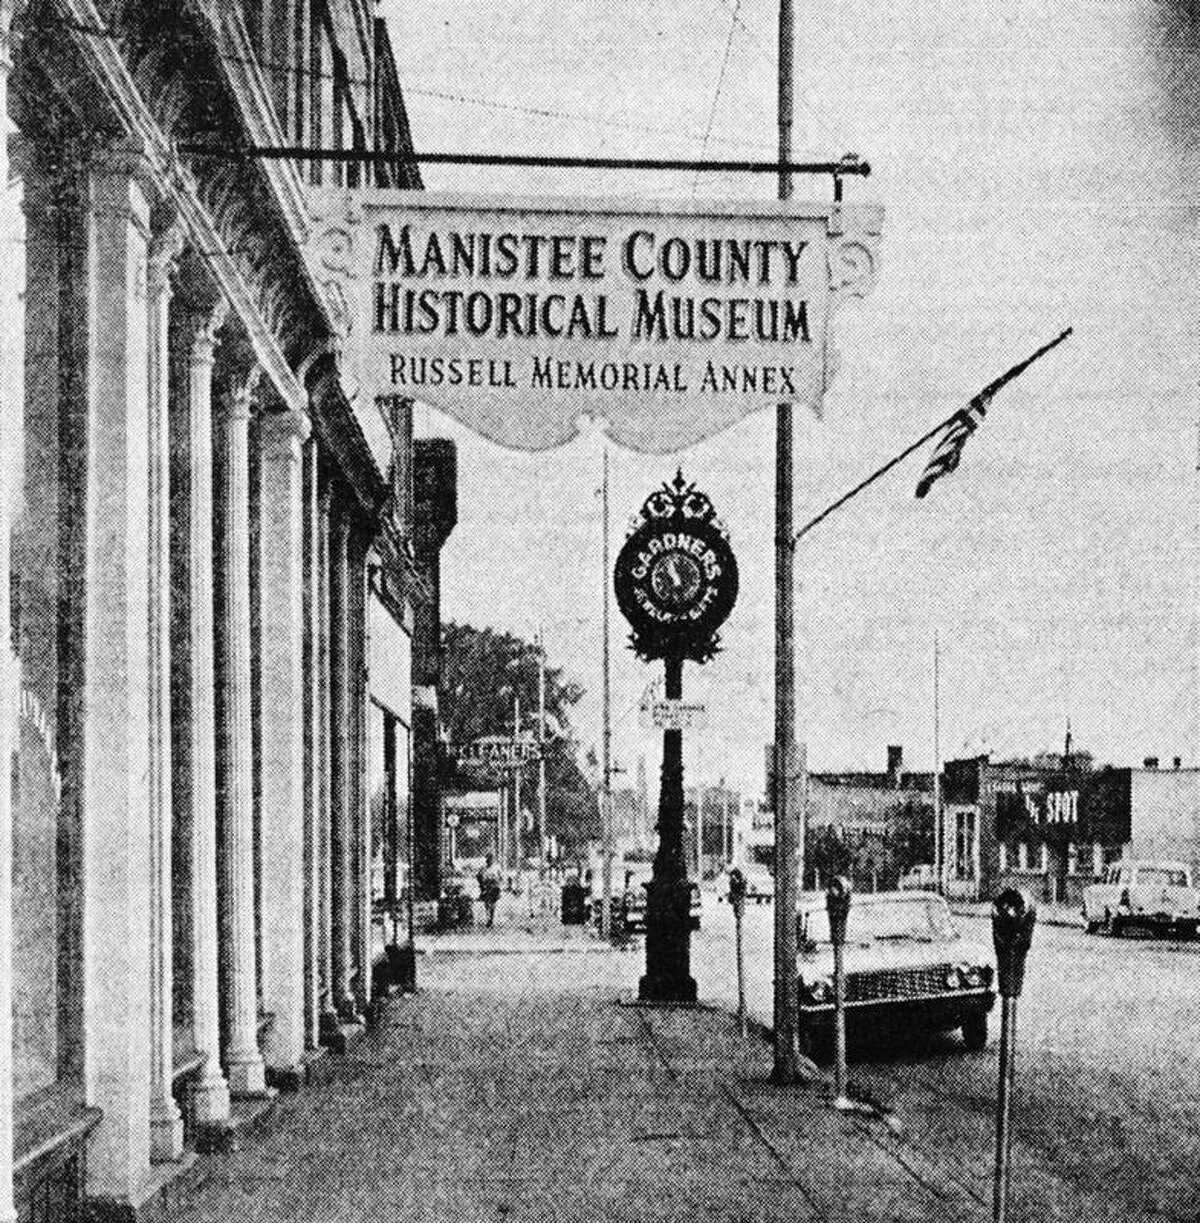 In 1961, when this photo was taken, the Manistee County Historical Museum had just moved into its new location at 425 River St. in Manistee. (Courtesy Photo/Manistee County Historical Museum)